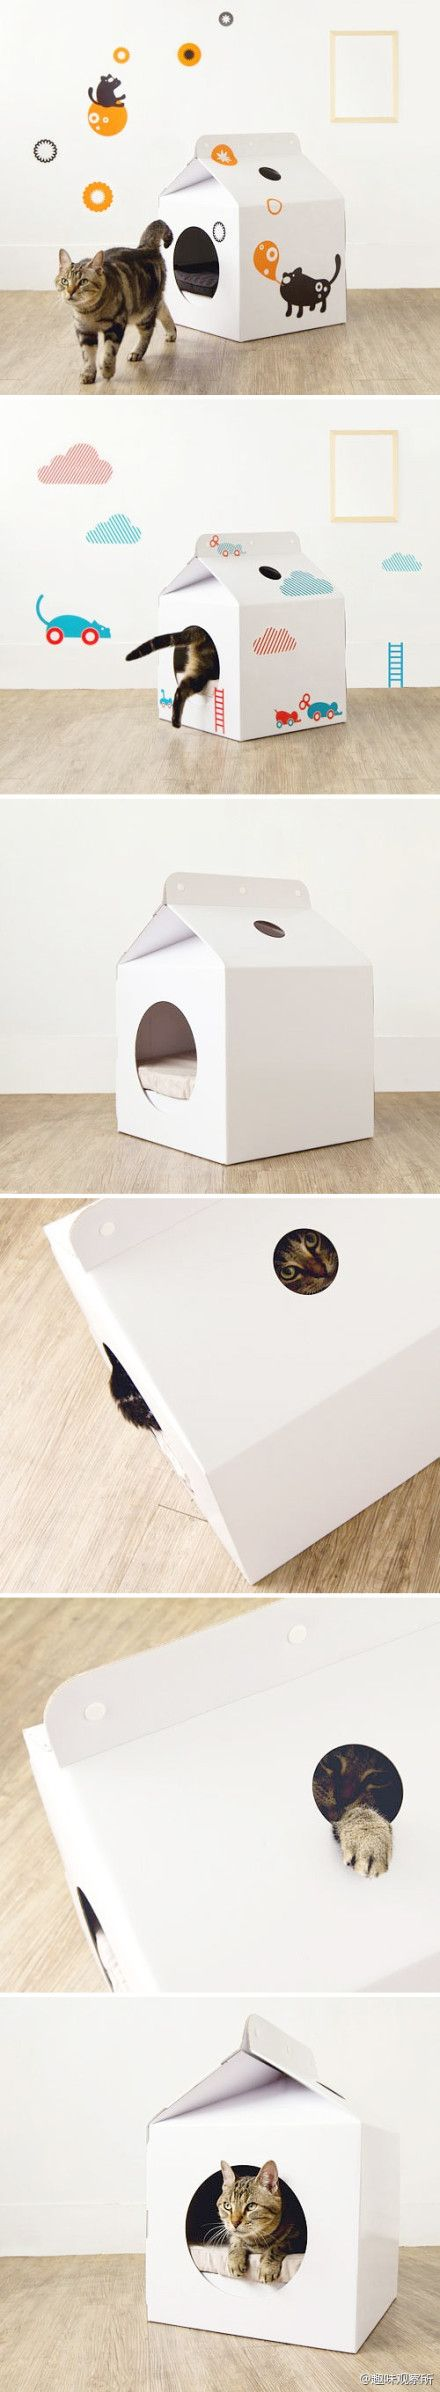 Milk Carton Pet Bed::Can be Drawn on or Painted on to Customize anyway you like.